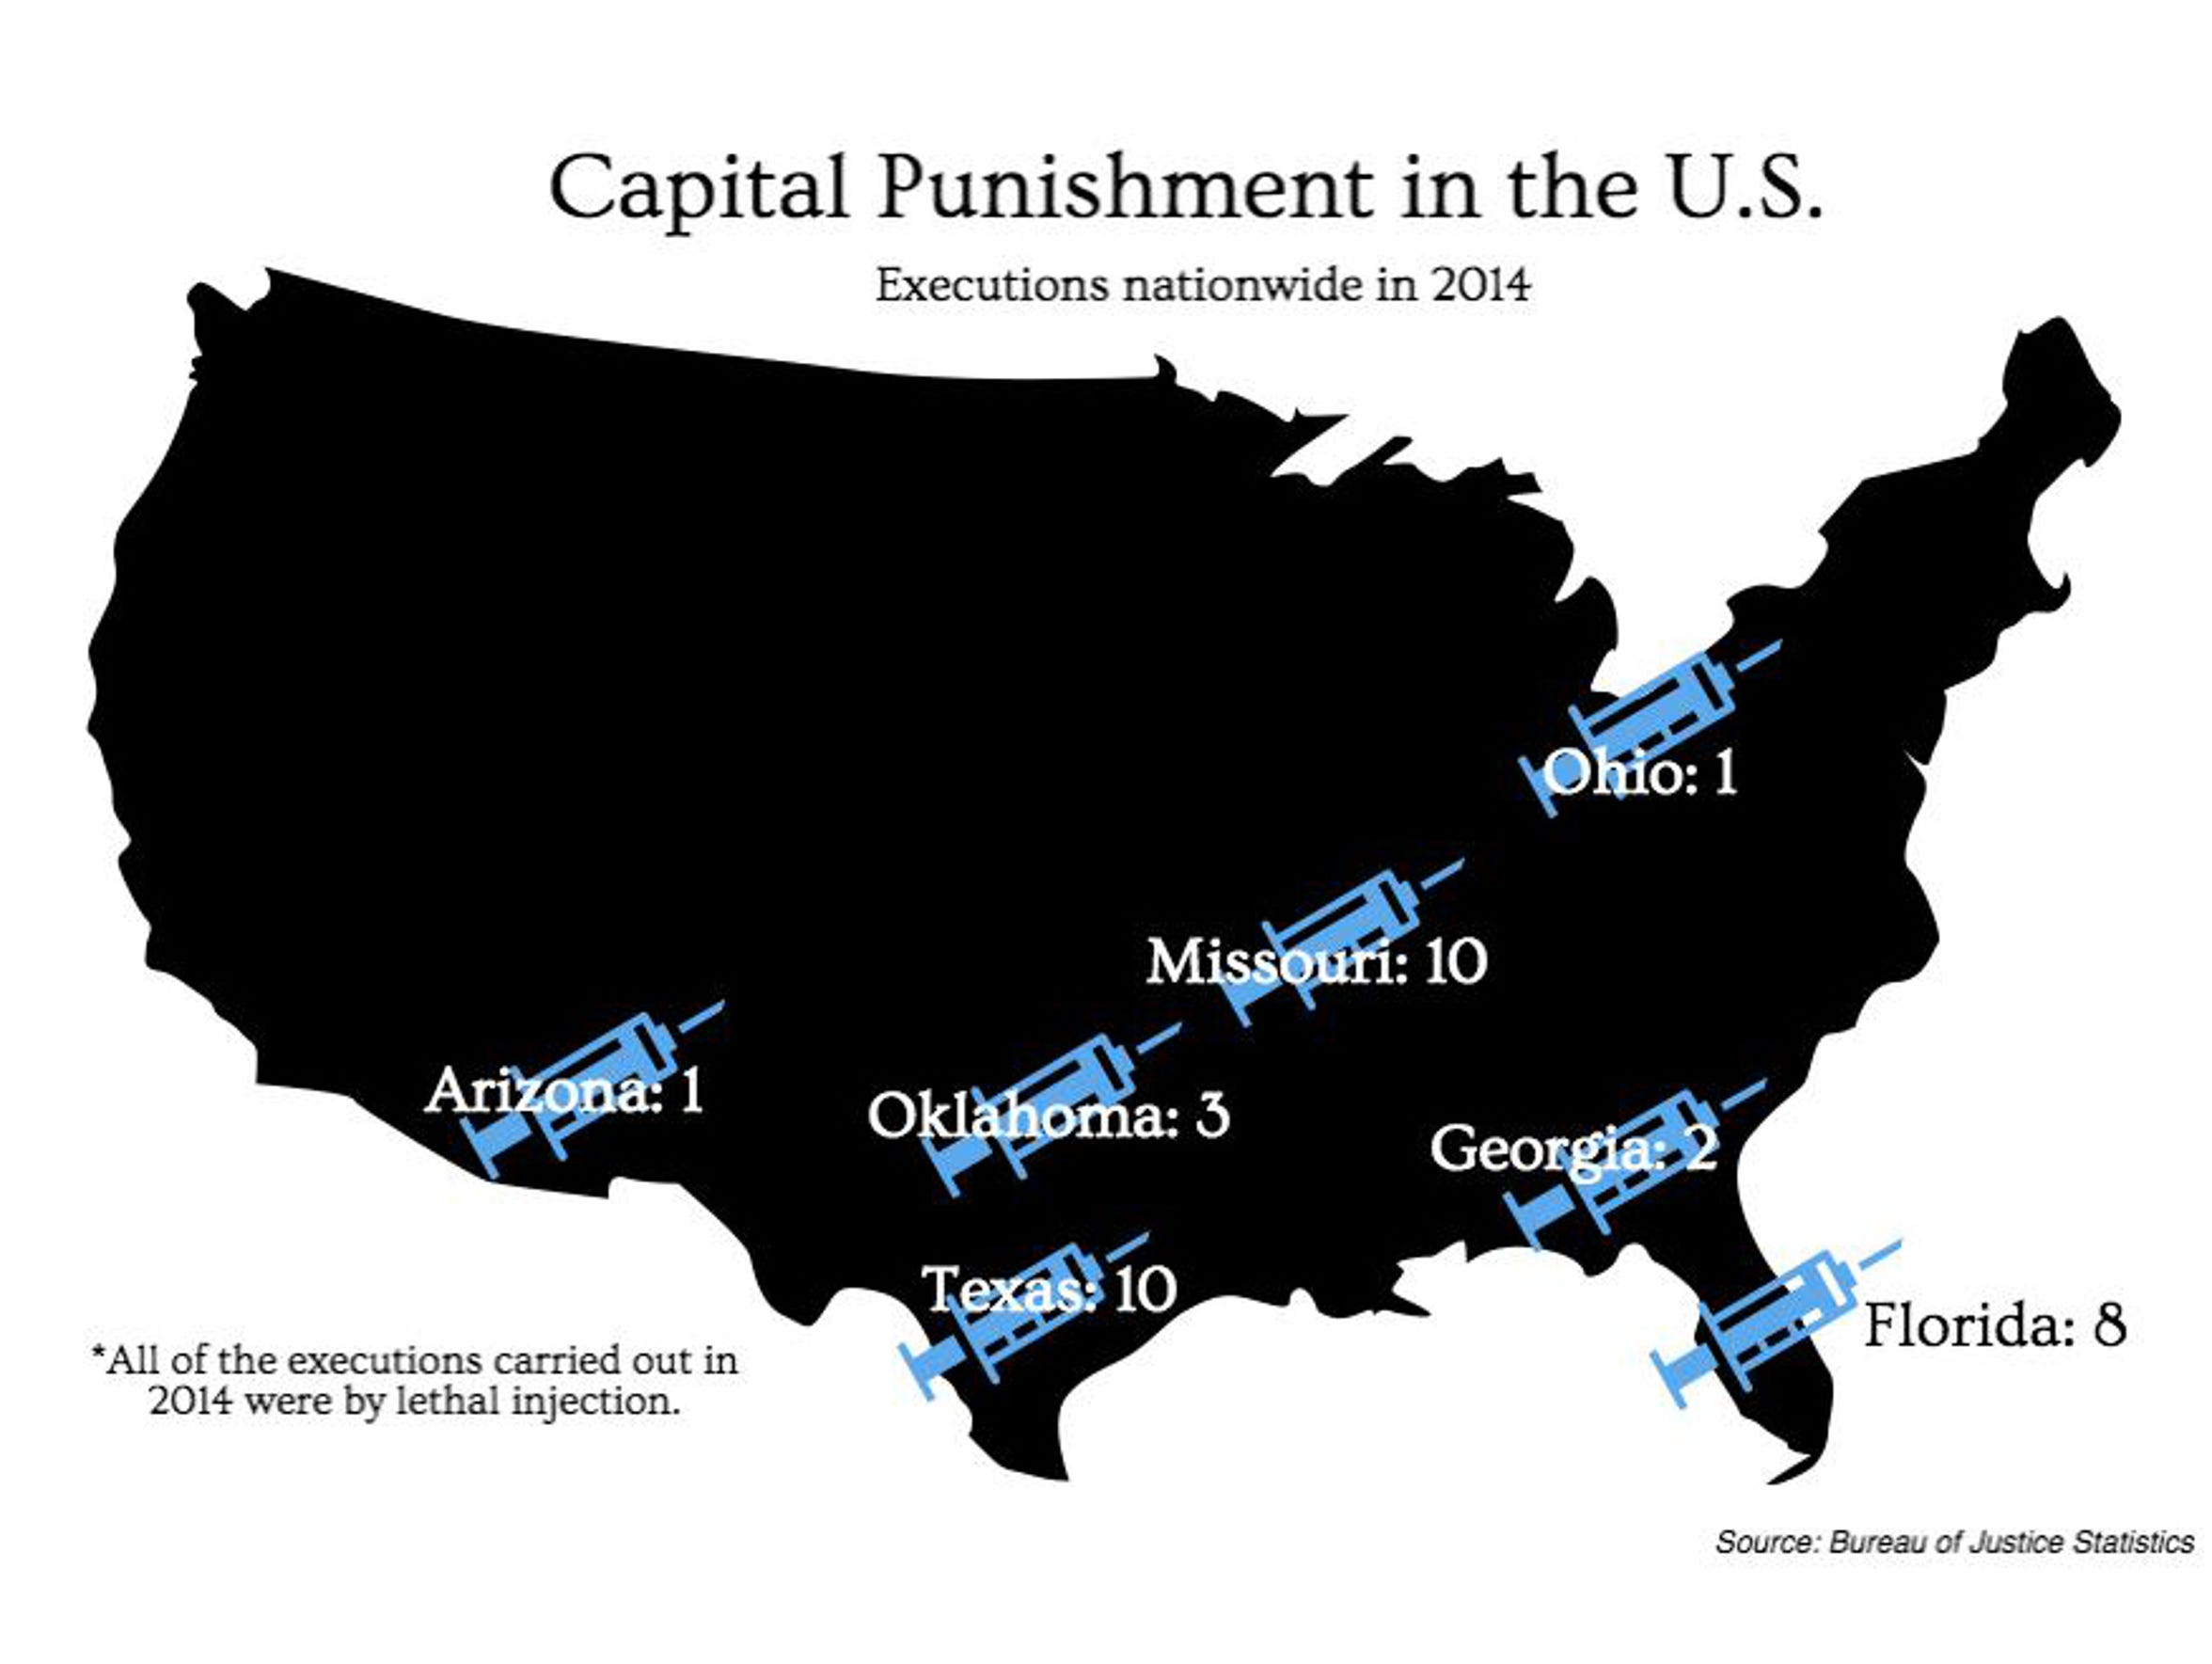 Capital Punishment in the U.S.